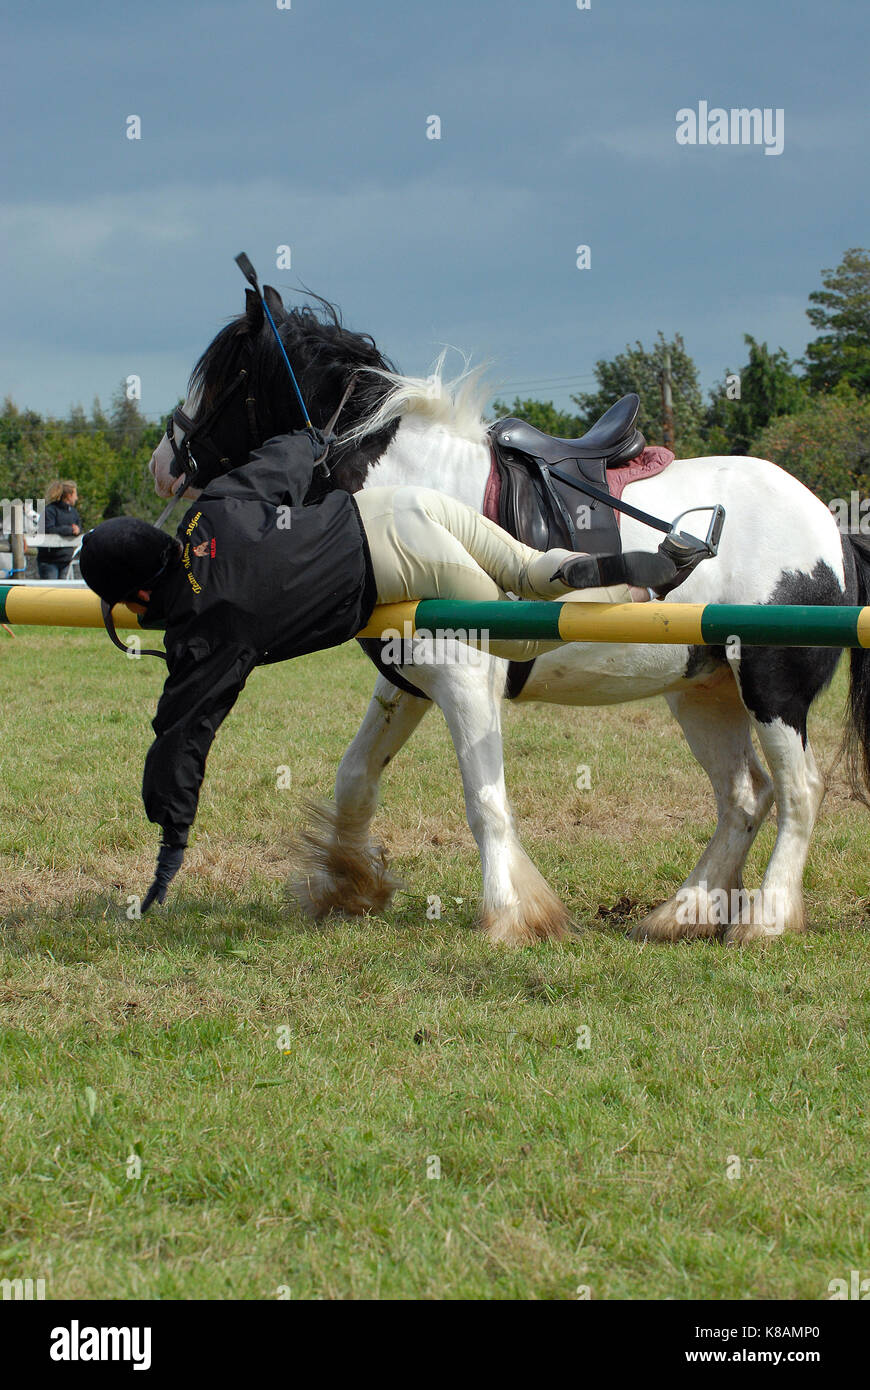 Rider Falling Off Horse Stock Photos Amp Rider Falling Off